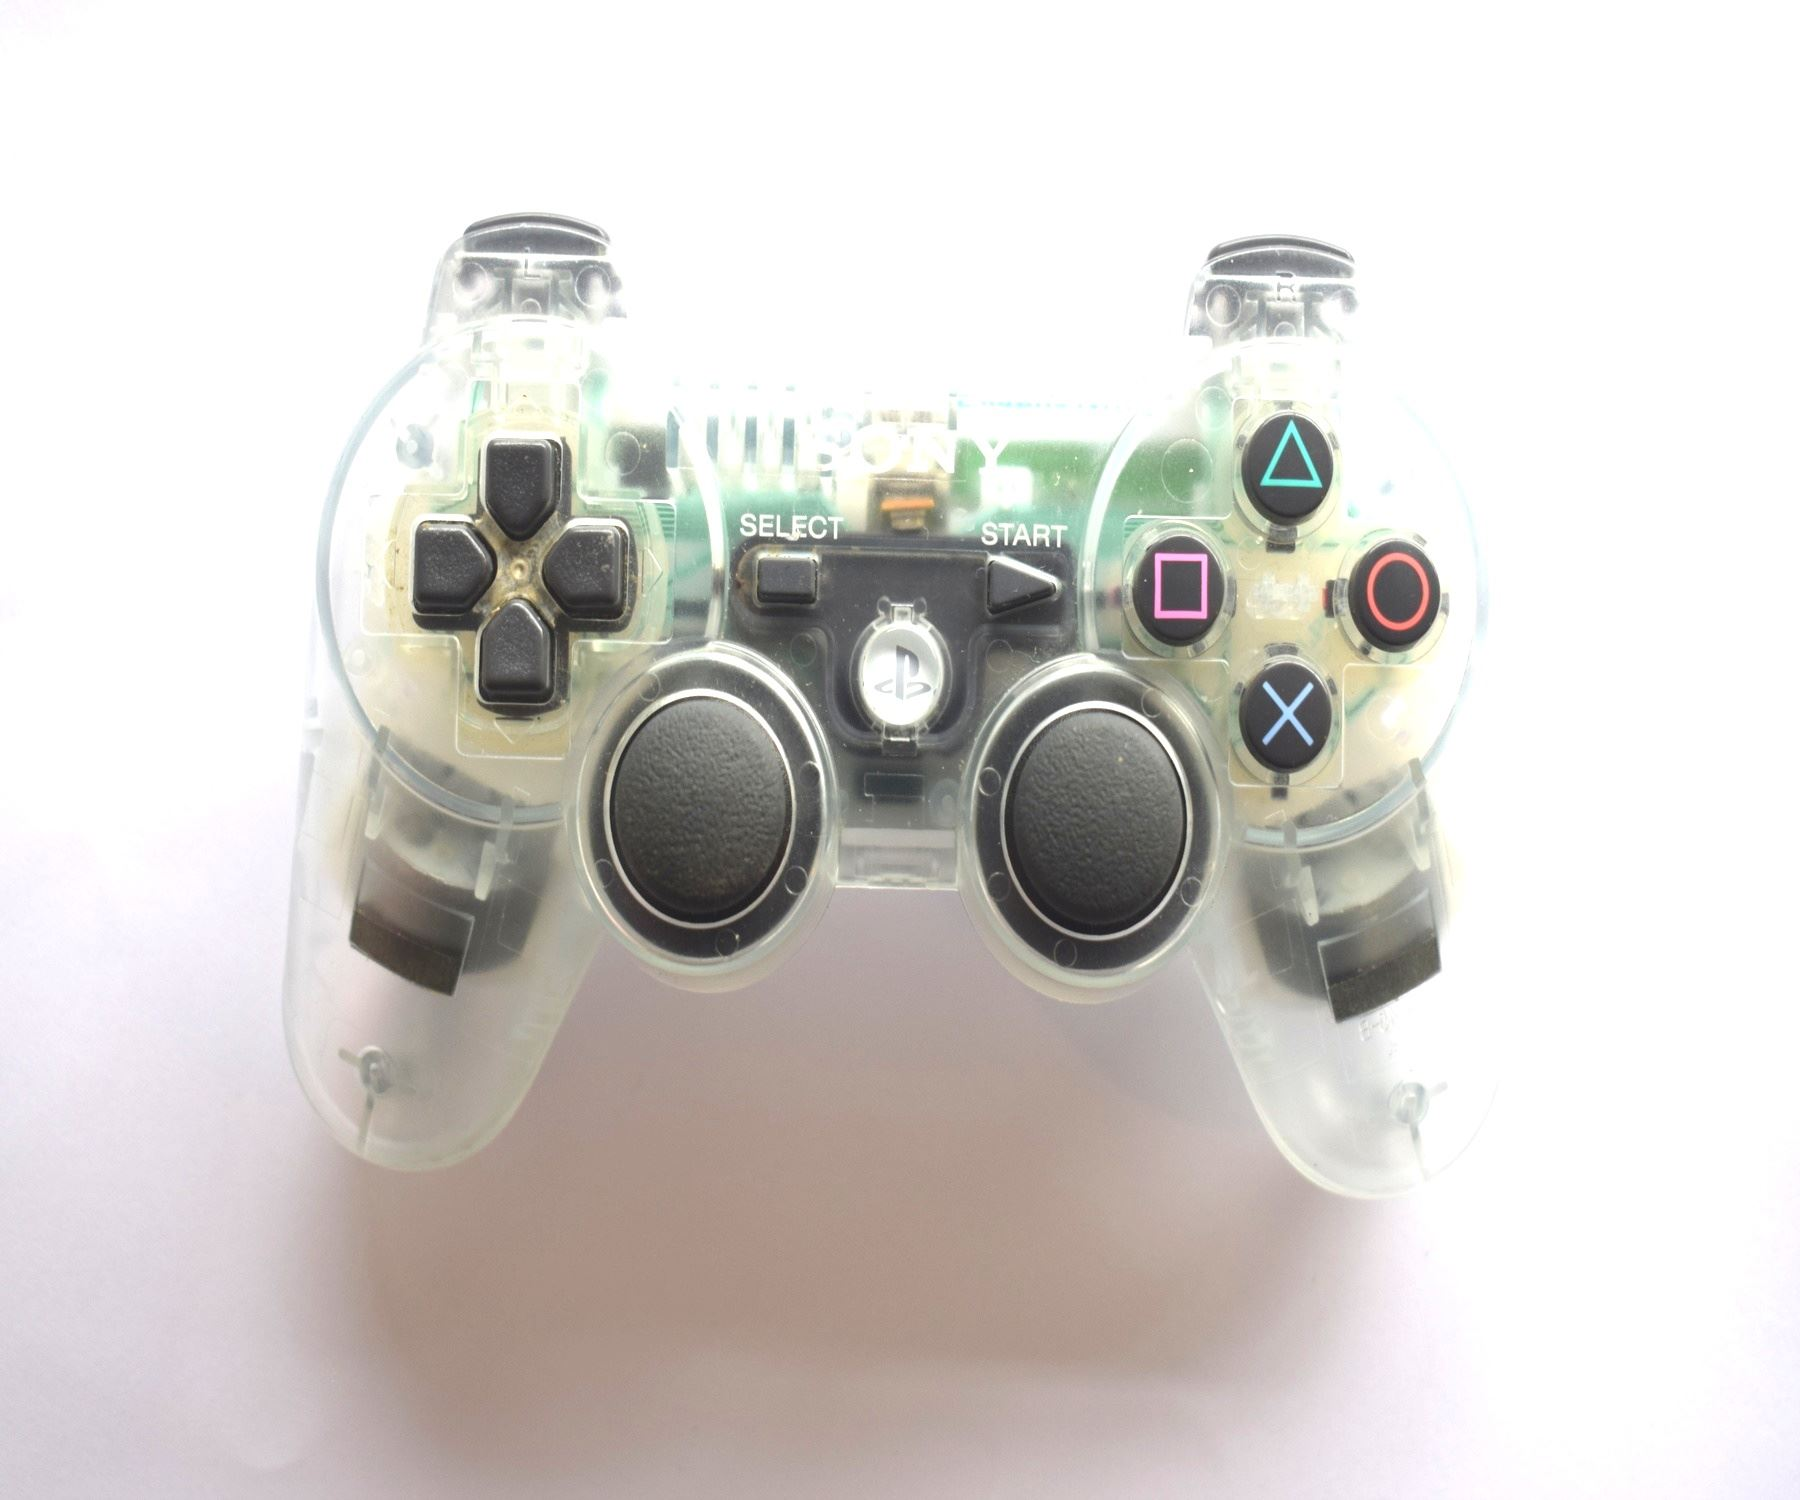 Official-Original-Sony-Playstation-Dual-Shock-3-PS3-Controller-Multiple-Colours thumbnail 18